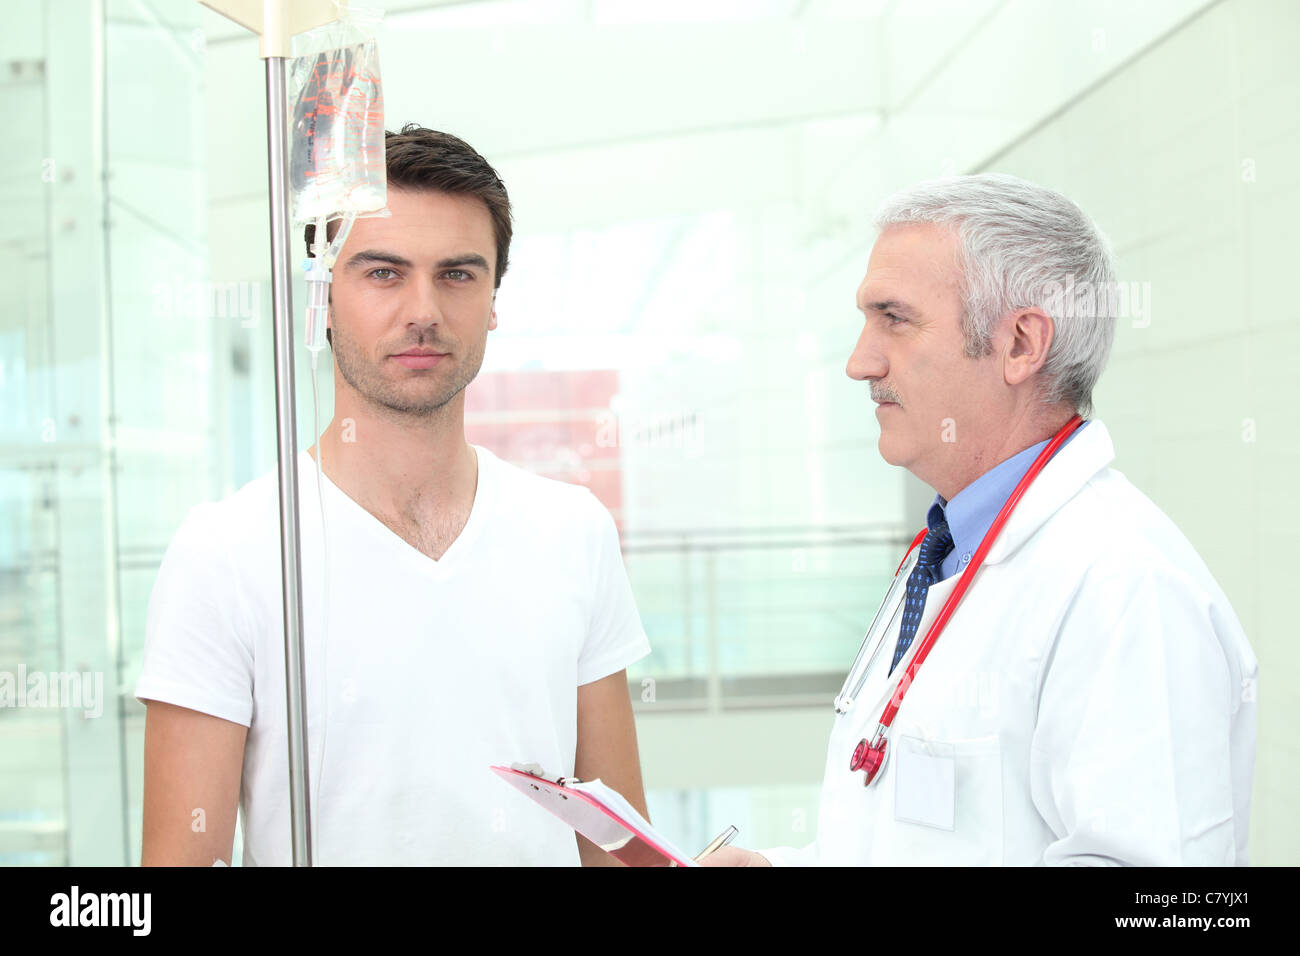 Doctor taking care of a patient - Stock Image